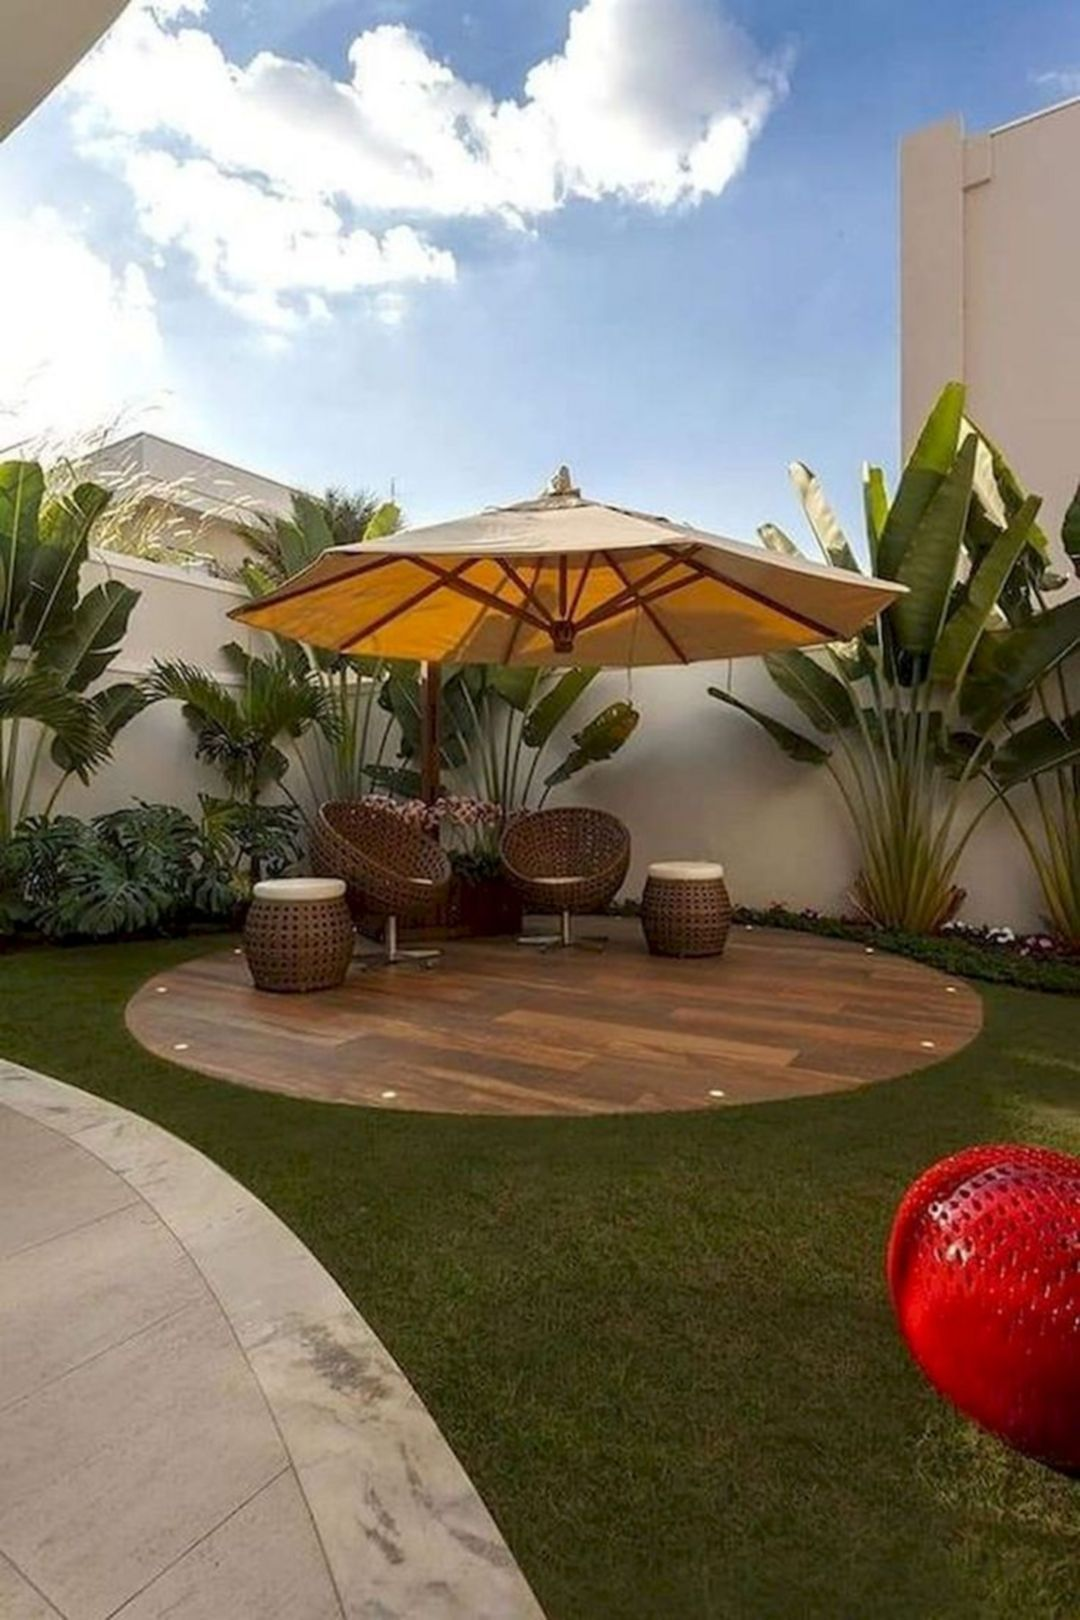 Photo of 11 Ideal Small Garden Designs for Inspiring Your Home Yard